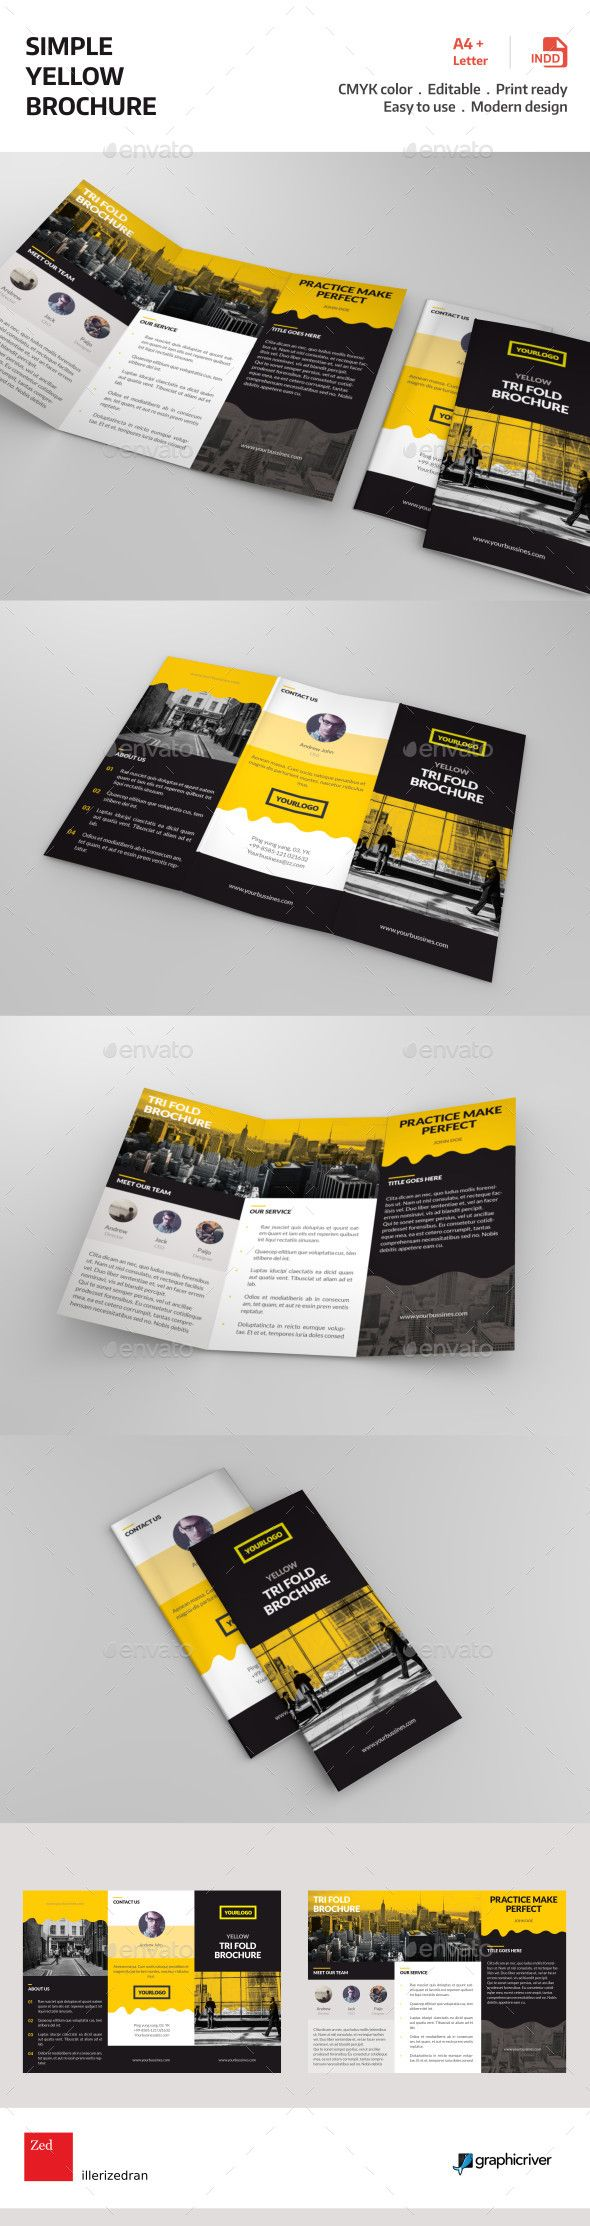 Simple Yellow Brochure | Brochures, Brochure template and Template